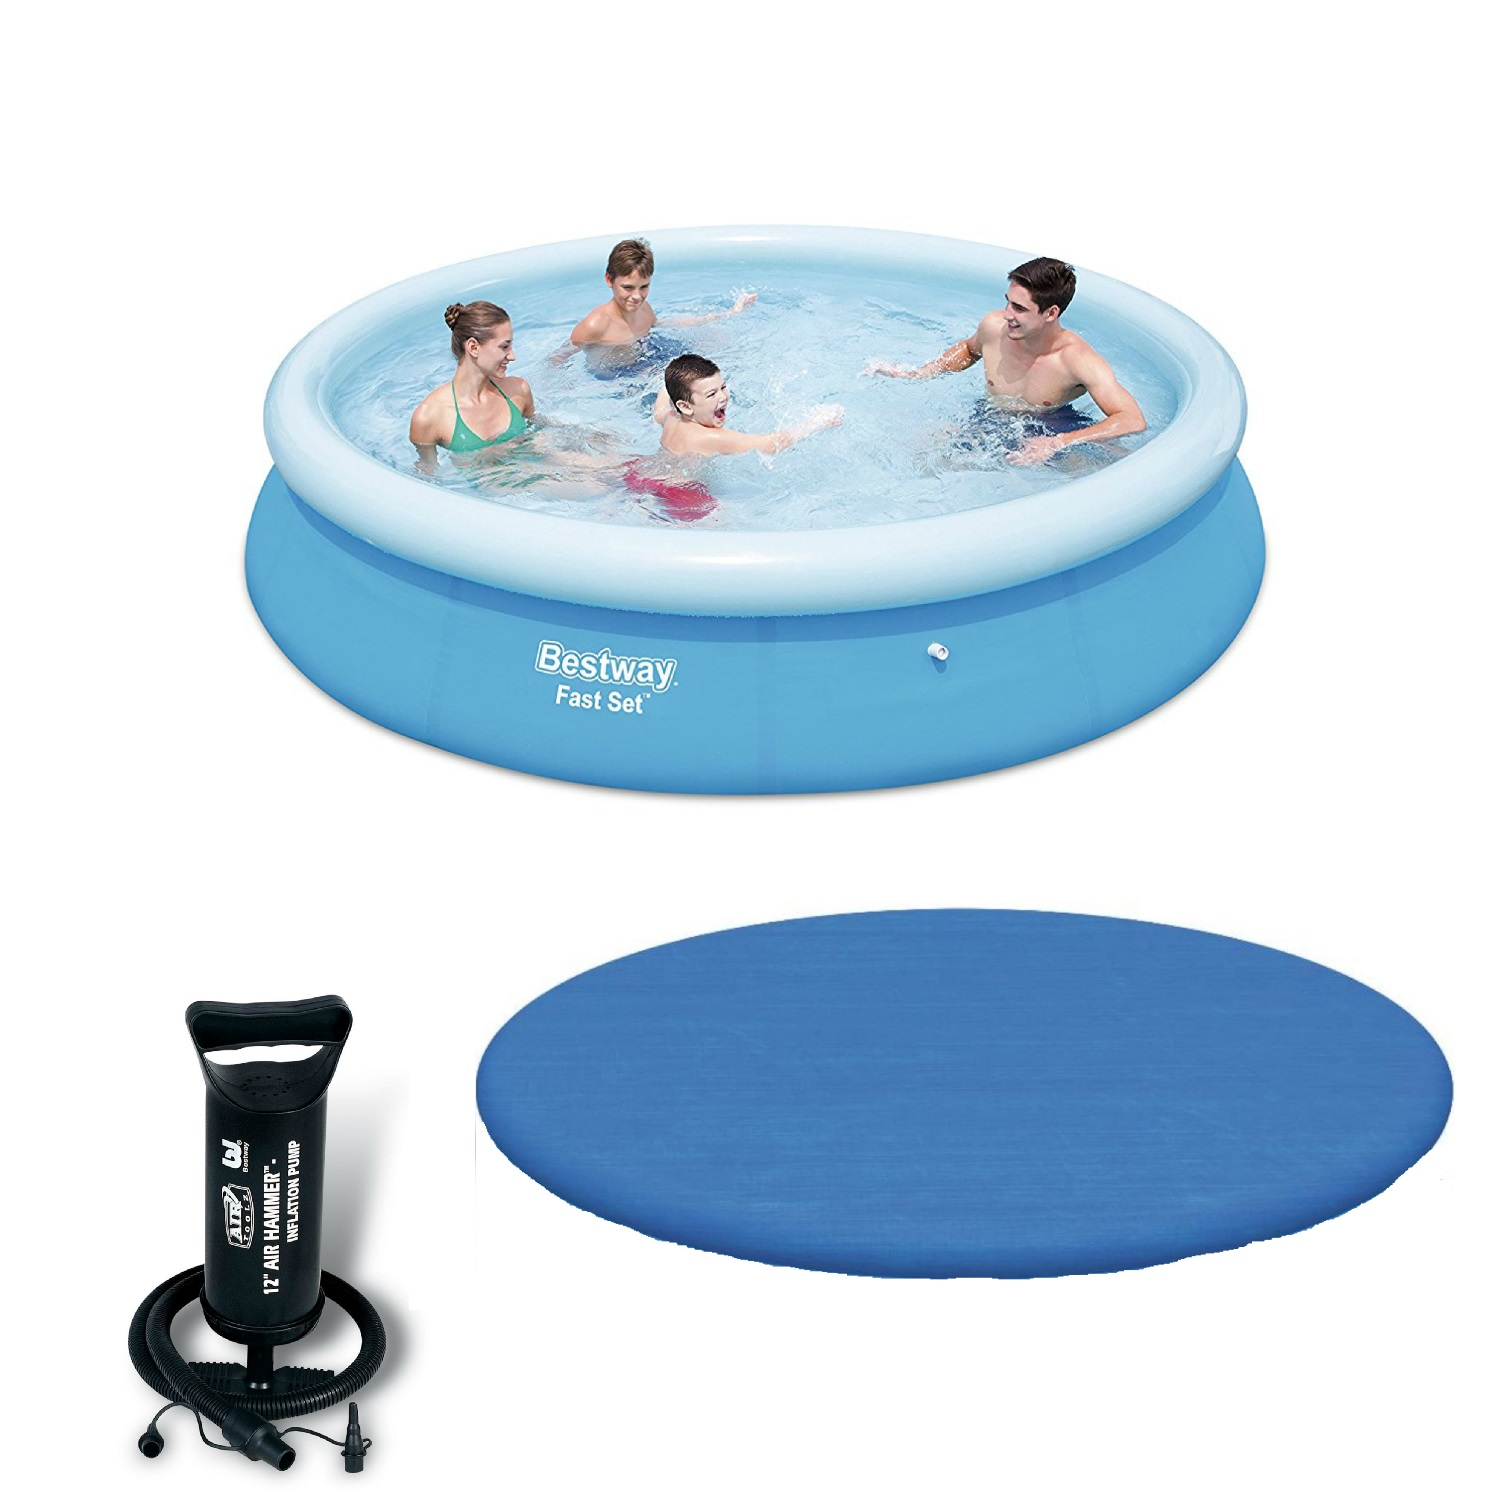 Bestway  12 Ft Fast Set Pool With Hand Pump & Debris Cover Bundle